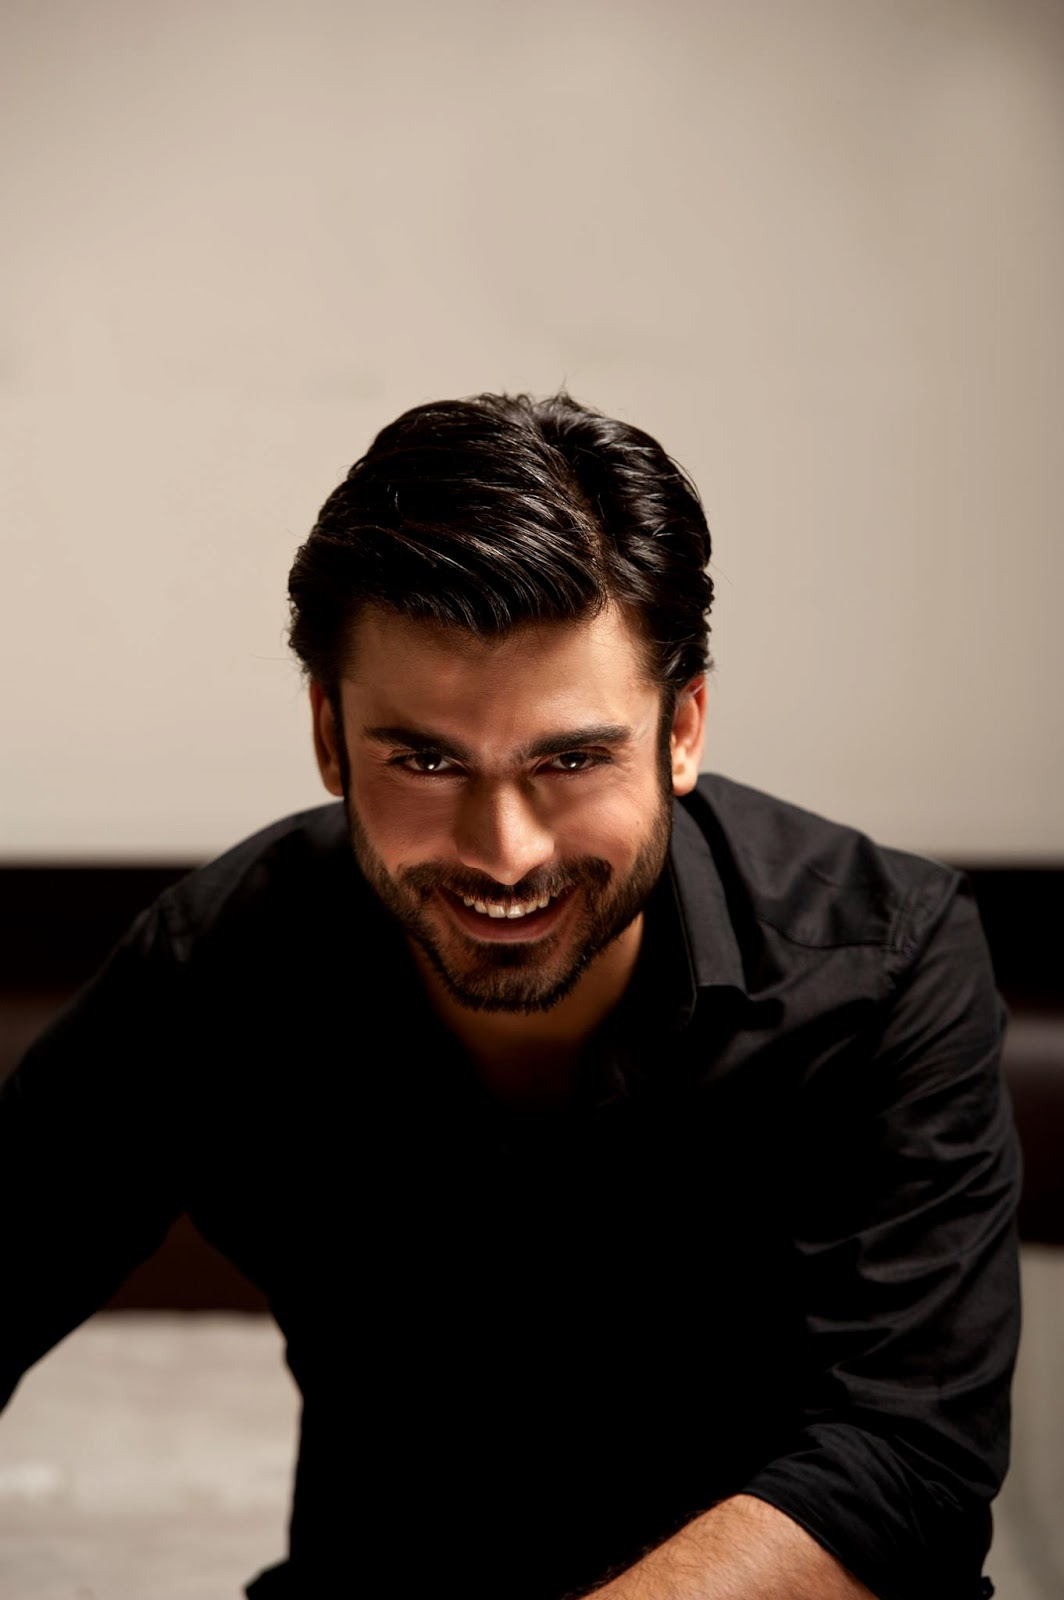 Cute And Happy Wallpapers Fawad Afzal Khan Cutest Celebrity Images Fashion Photos